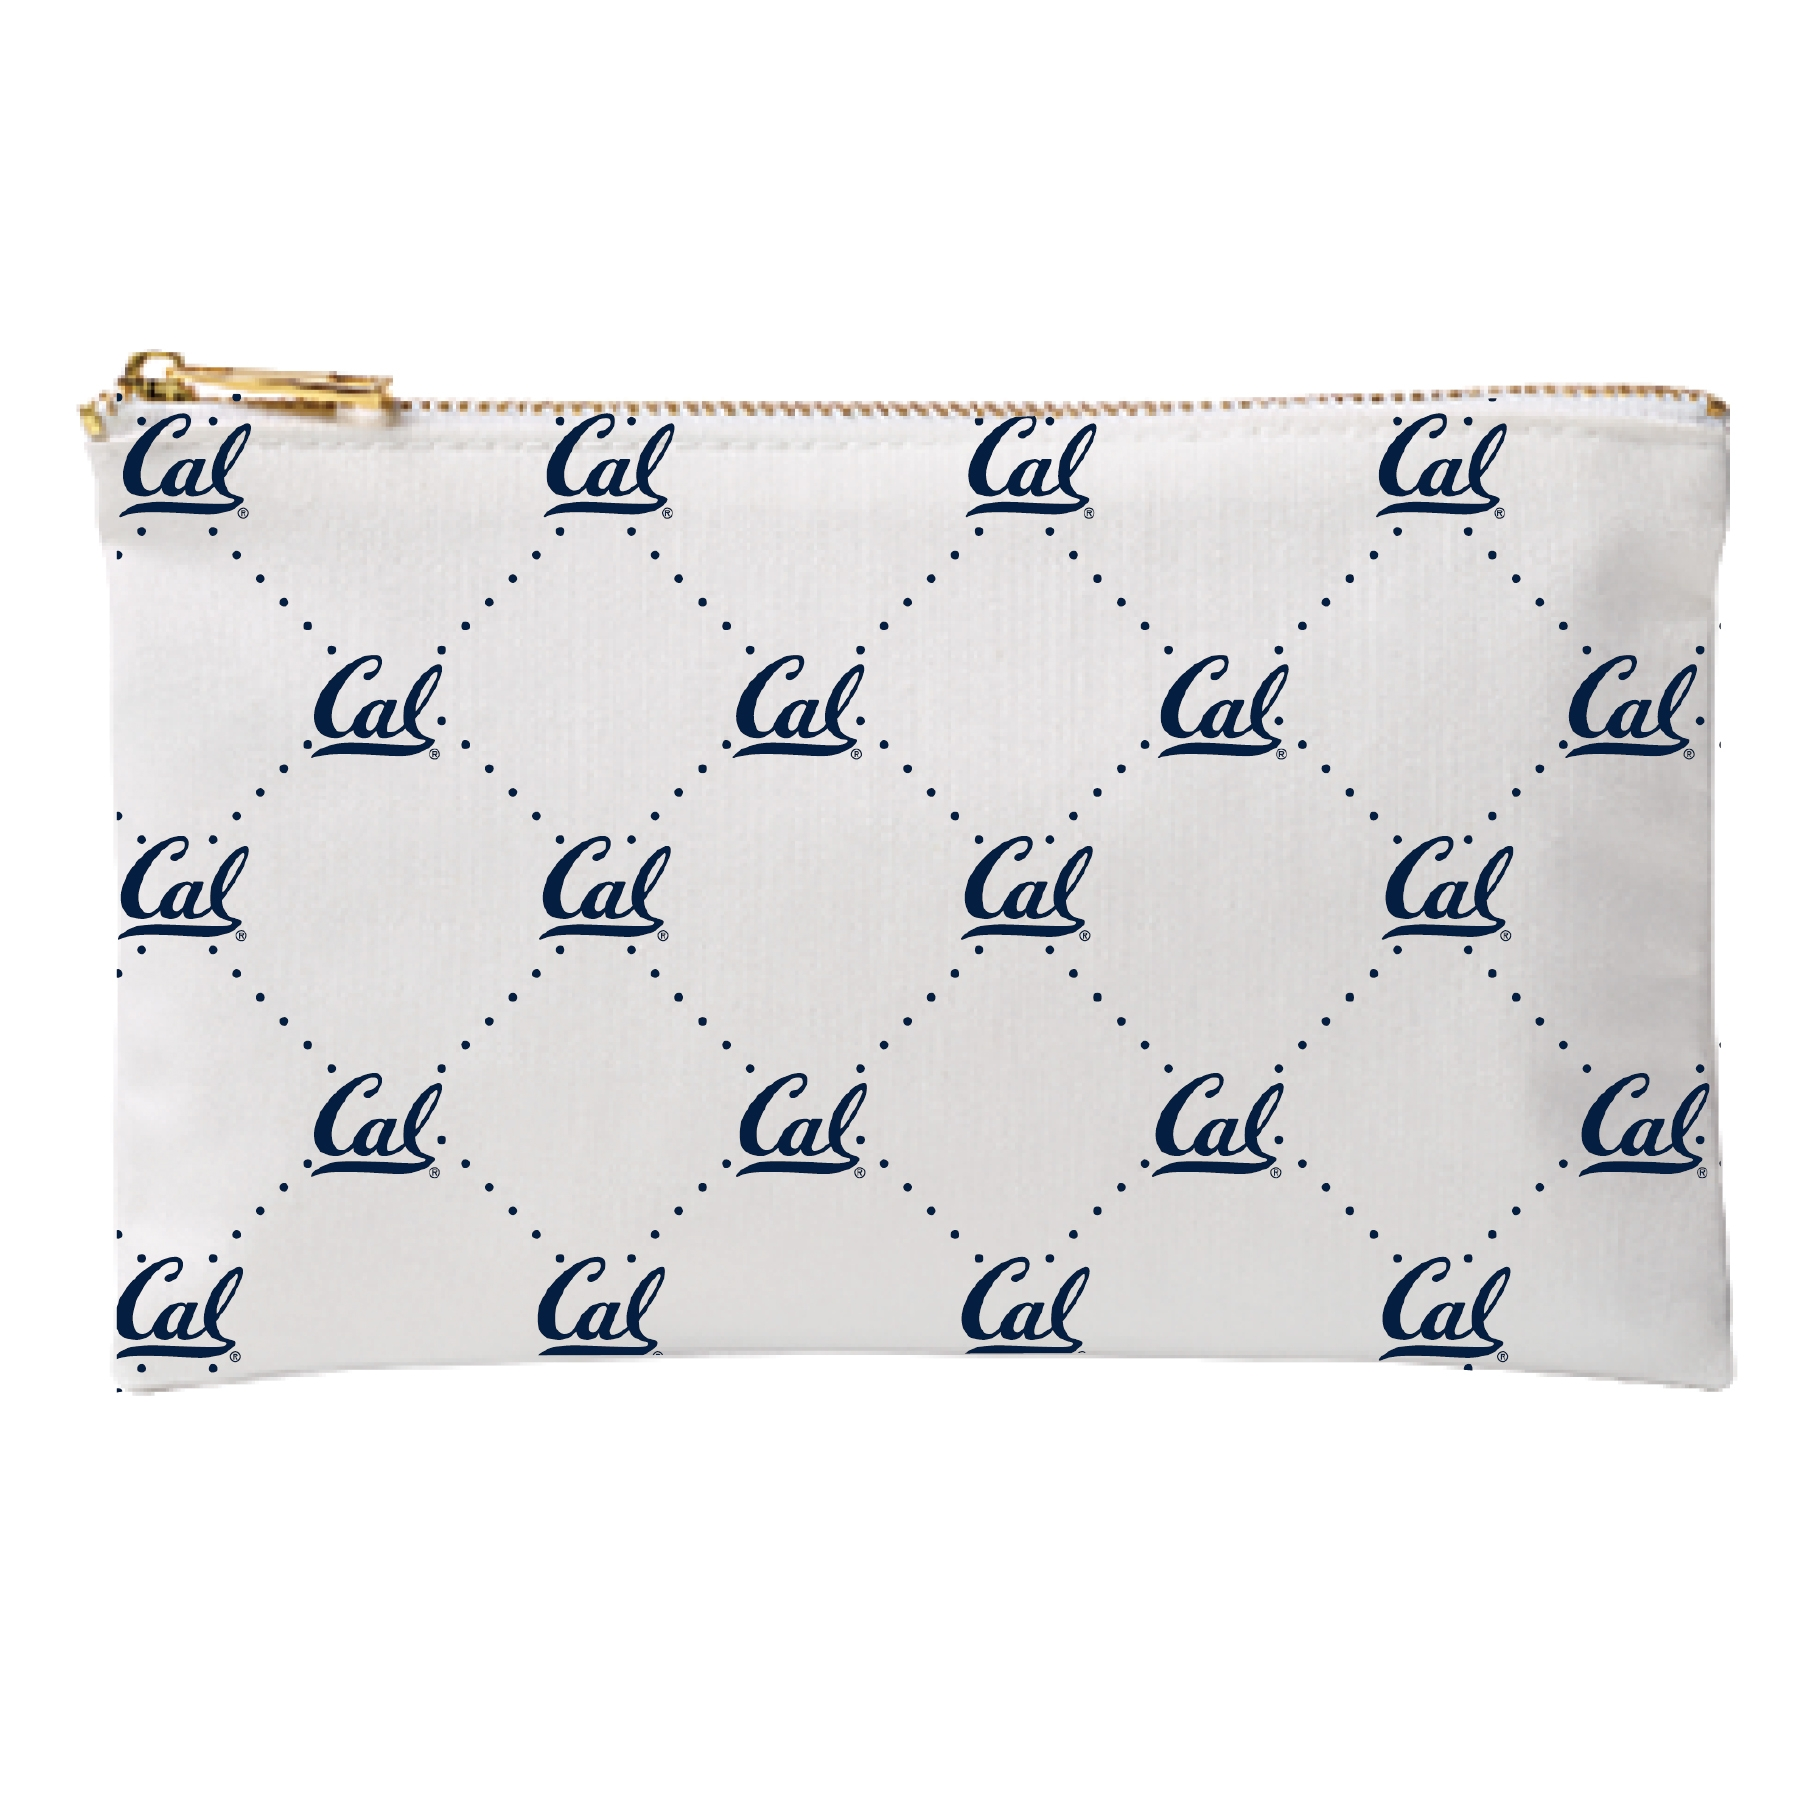 University of California Berkeley Zippered Pouch Make up Case